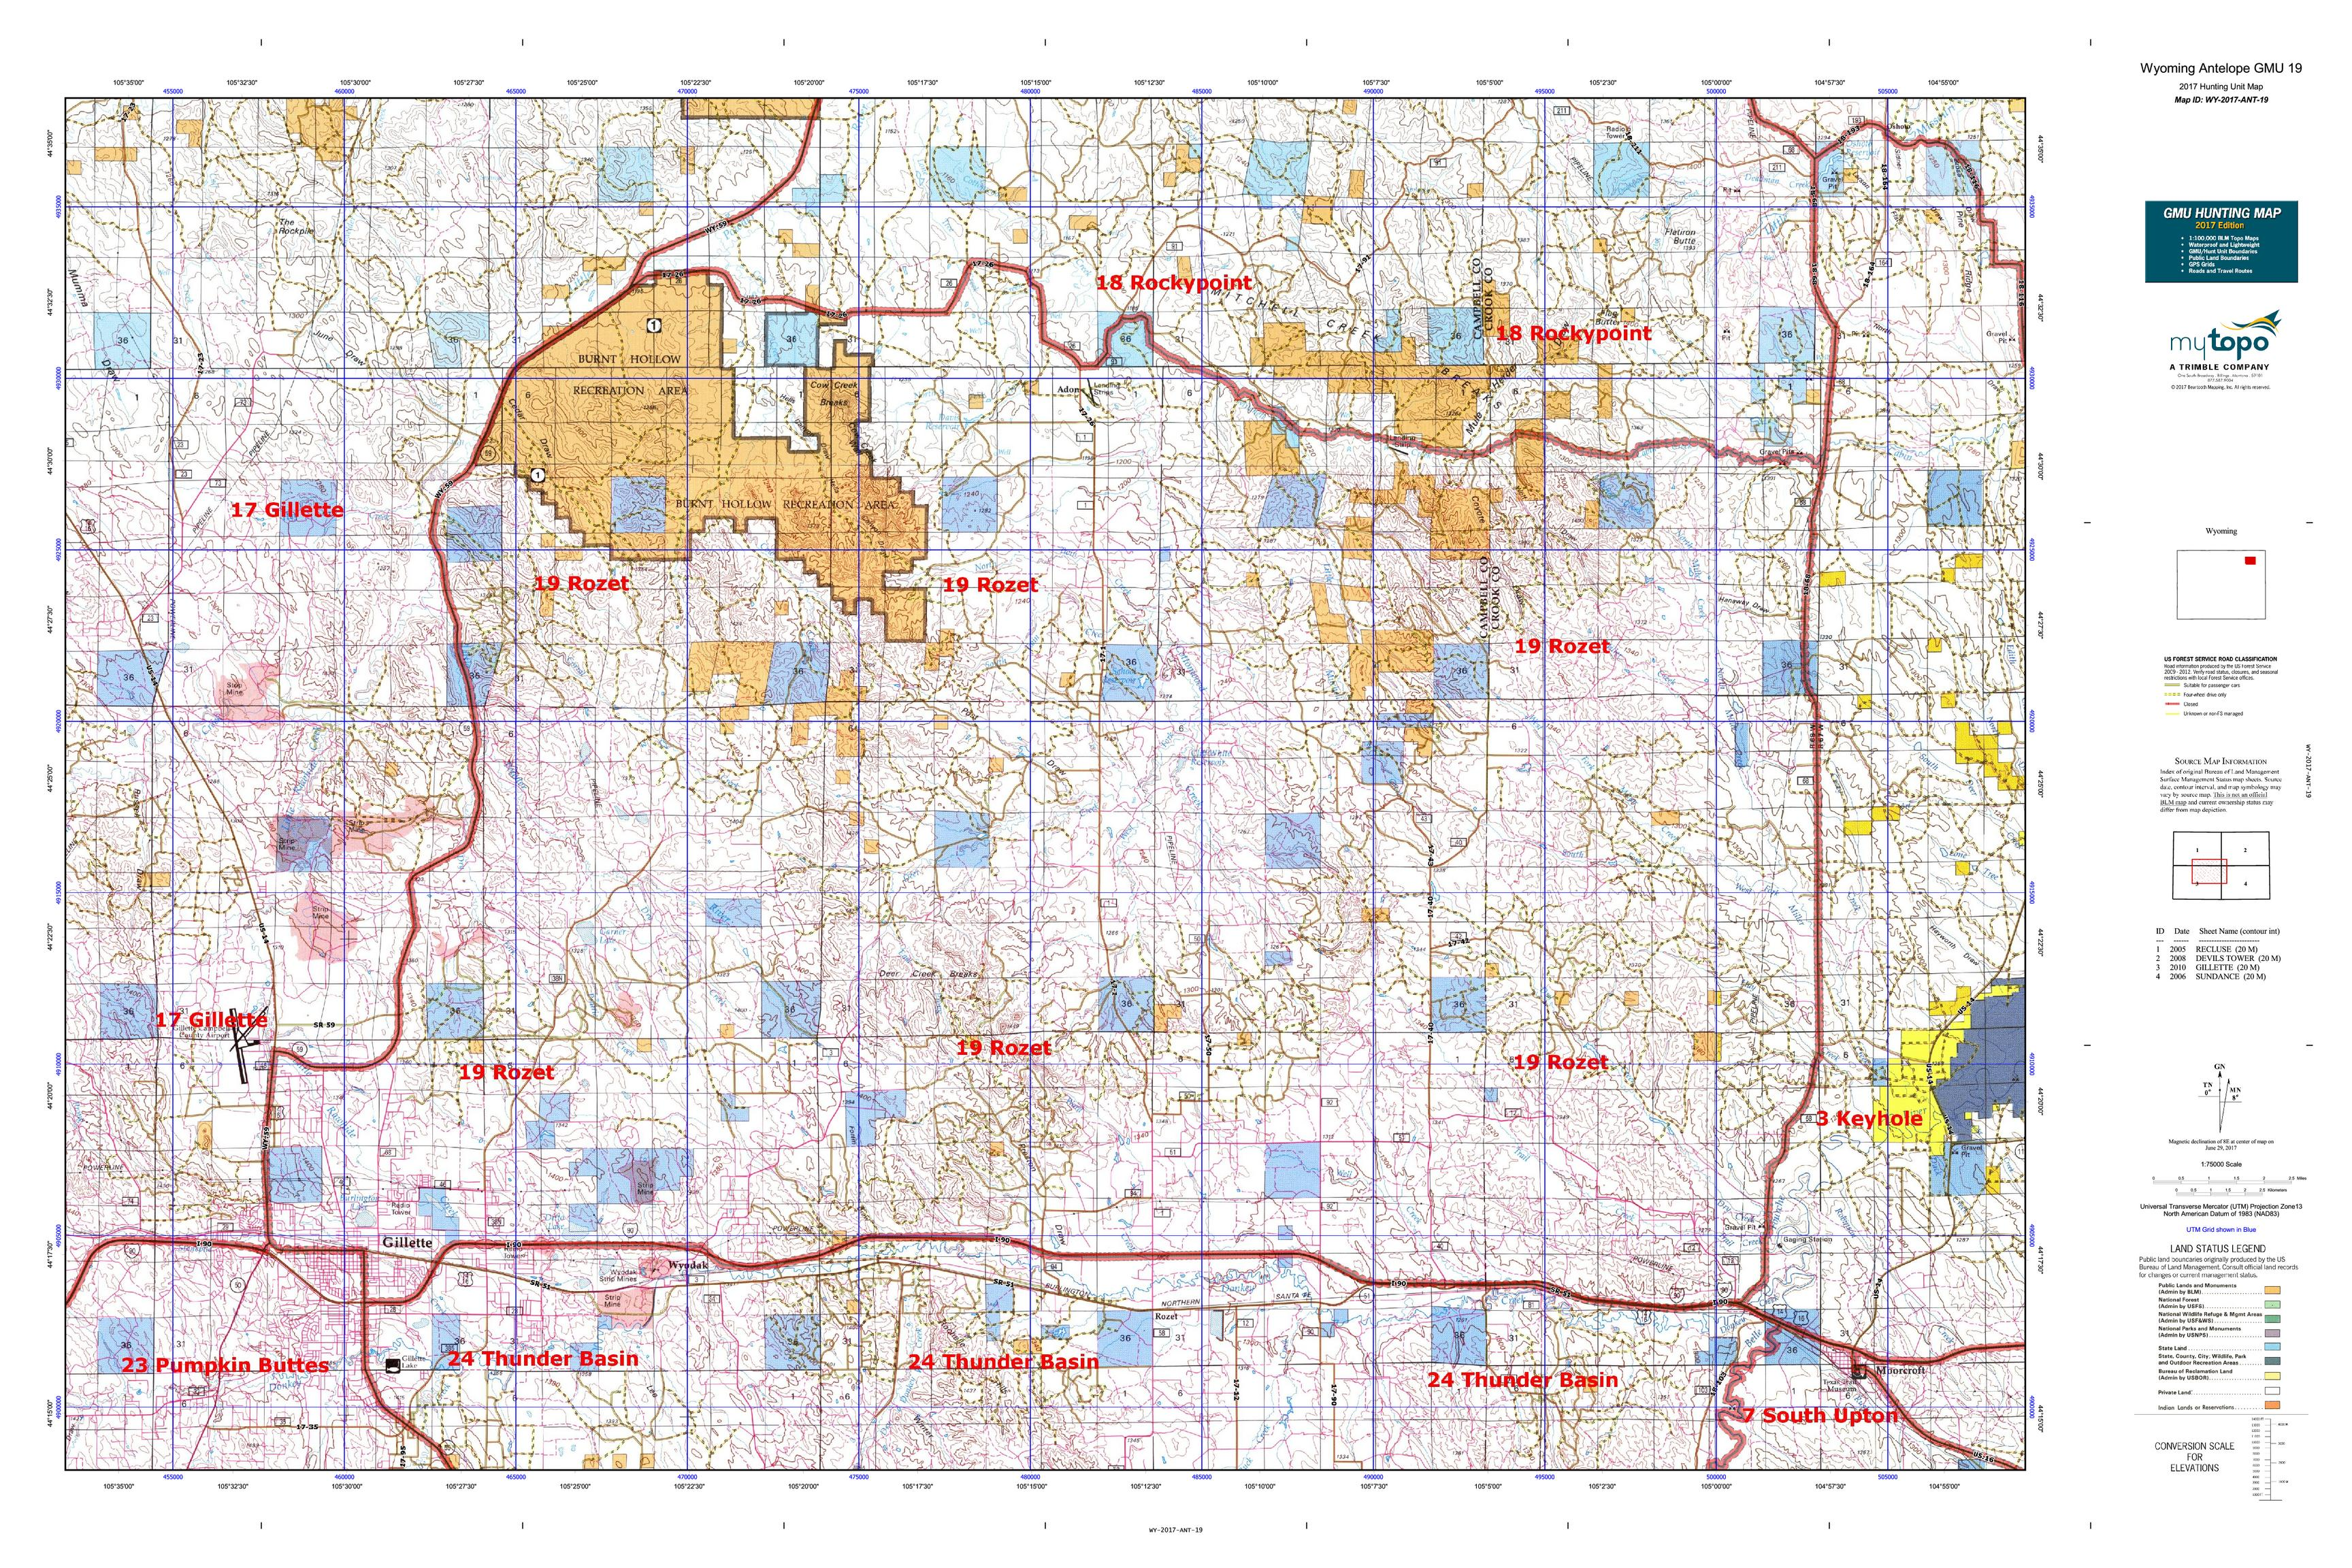 Wyoming Antelope GMU 19 Map MyTopo